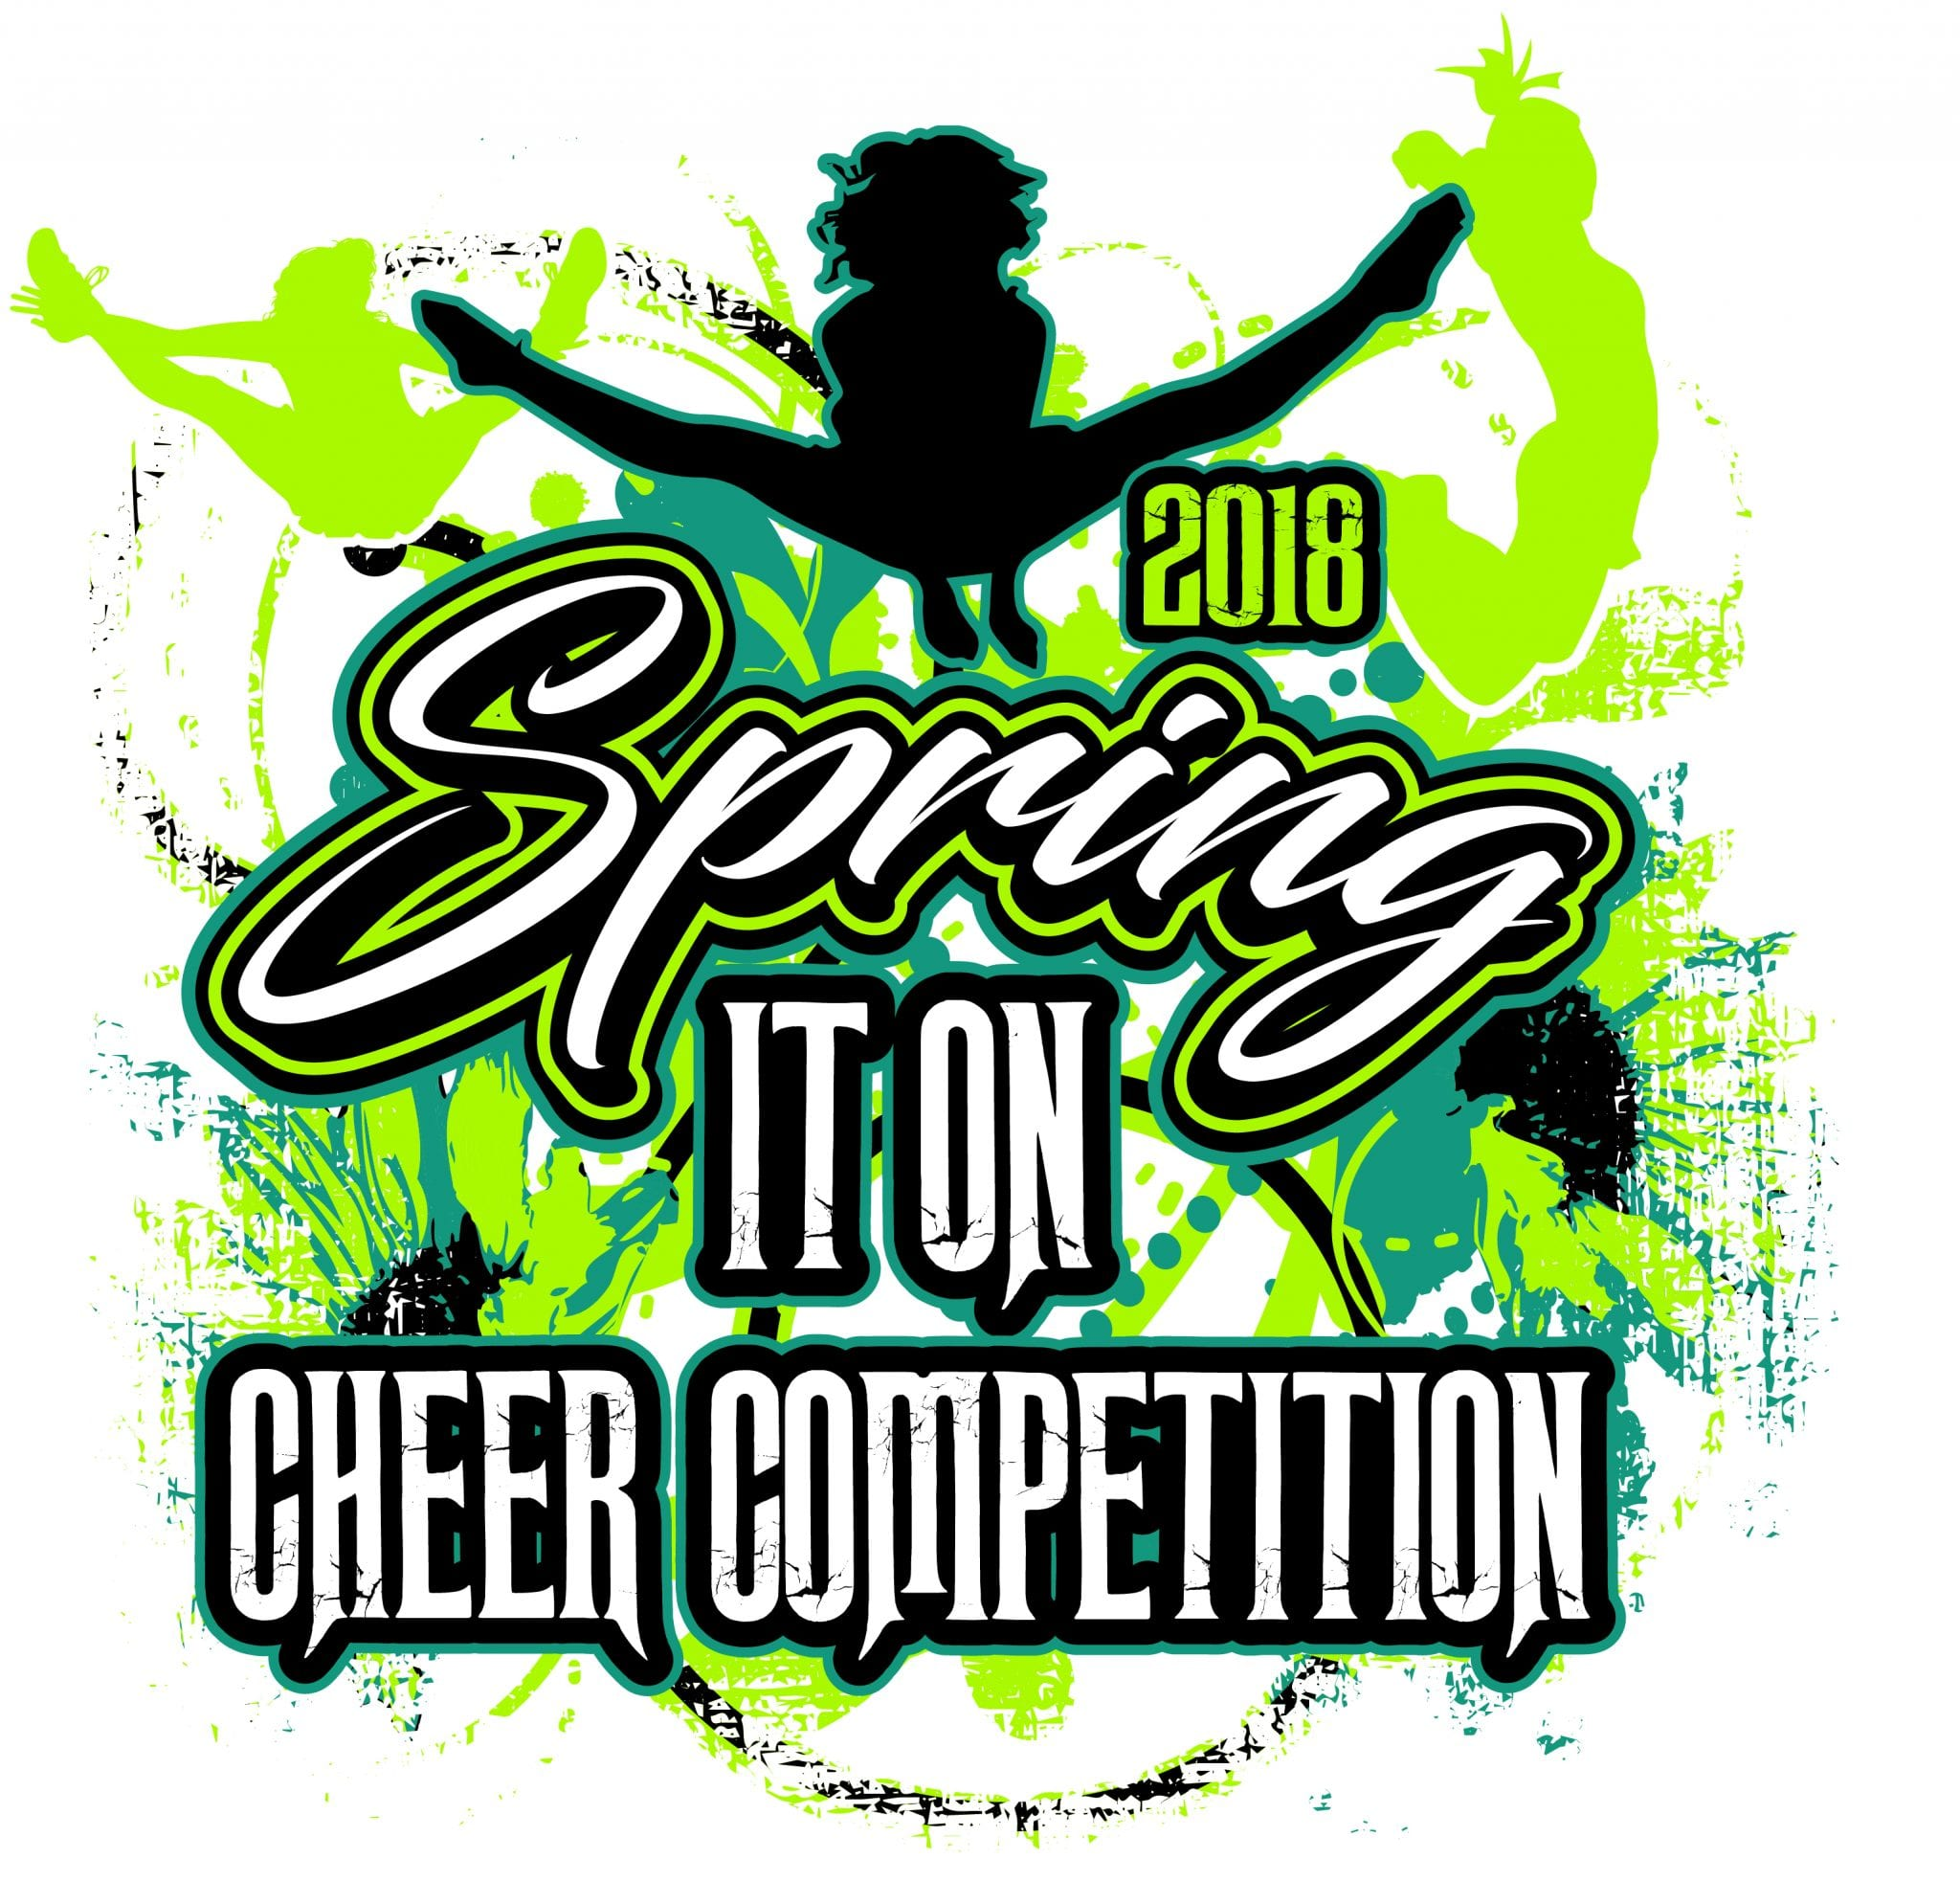 SPRING IT ON CHEER COMPETITION 2018 t-shirt vector logo design for print